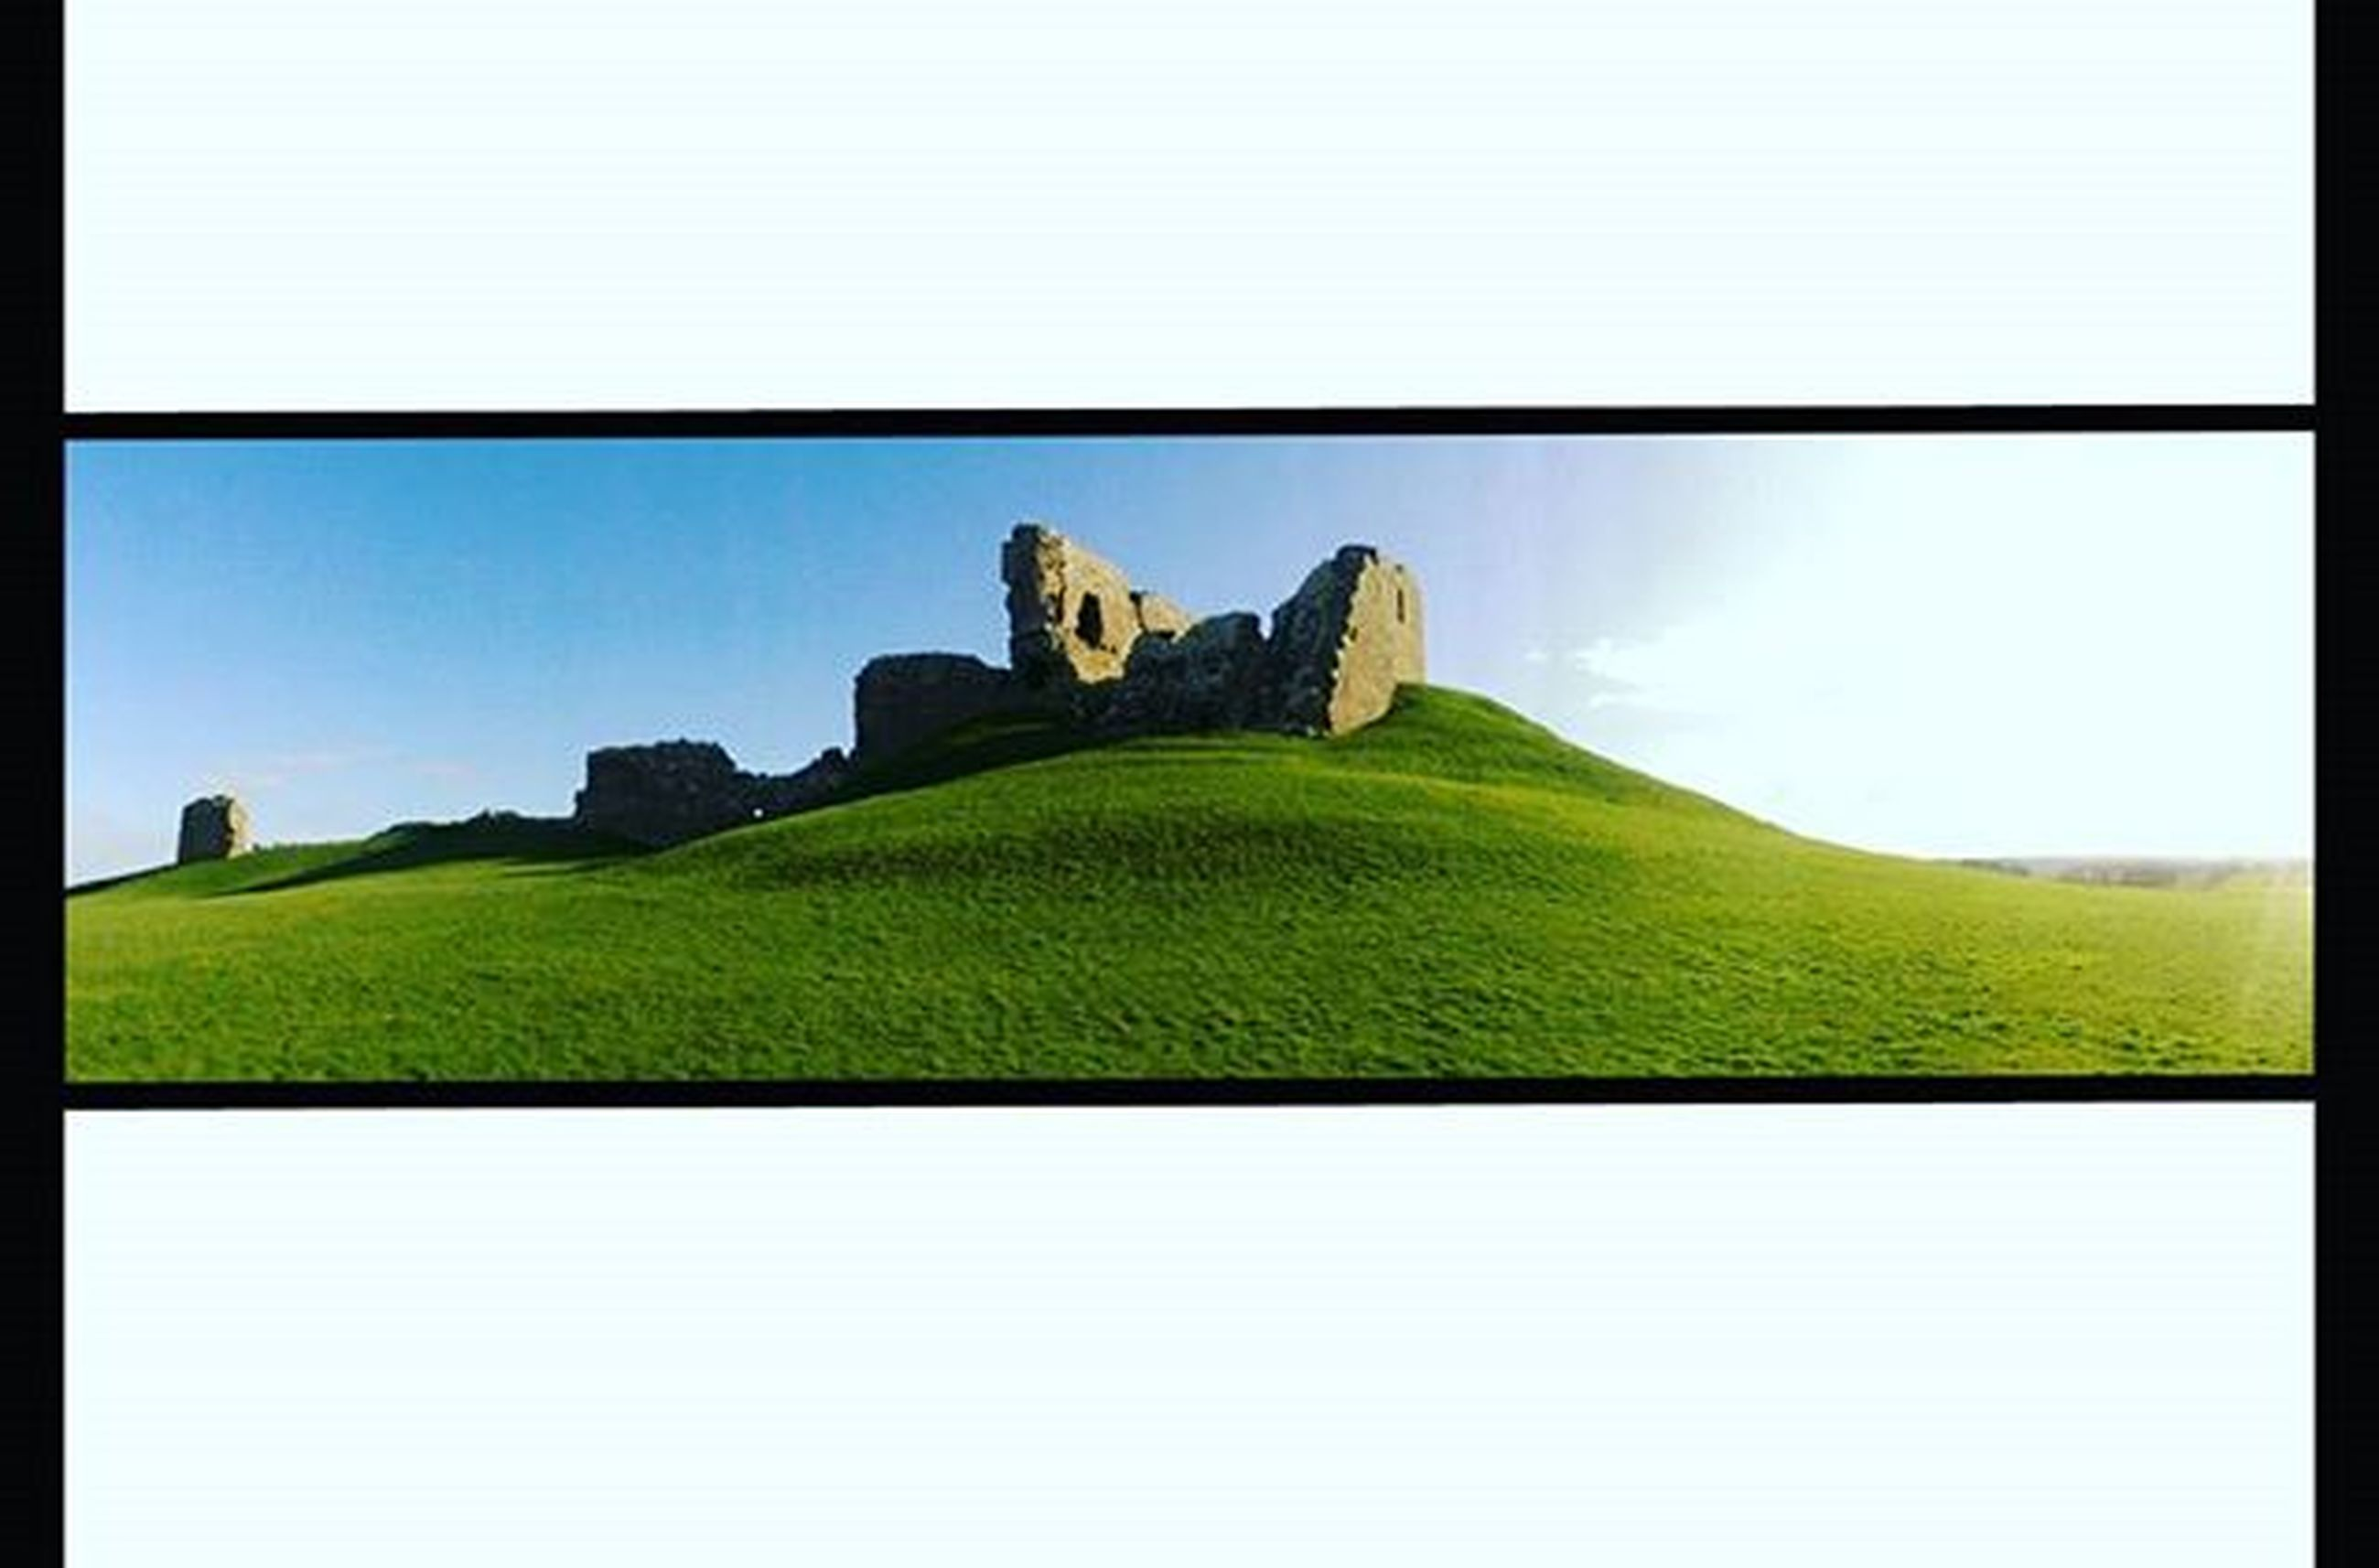 grass, landscape, green color, clear sky, sky, tranquility, tranquil scene, field, copy space, history, built structure, nature, scenics, transfer print, hill, architecture, old ruin, beauty in nature, ancient, grassy